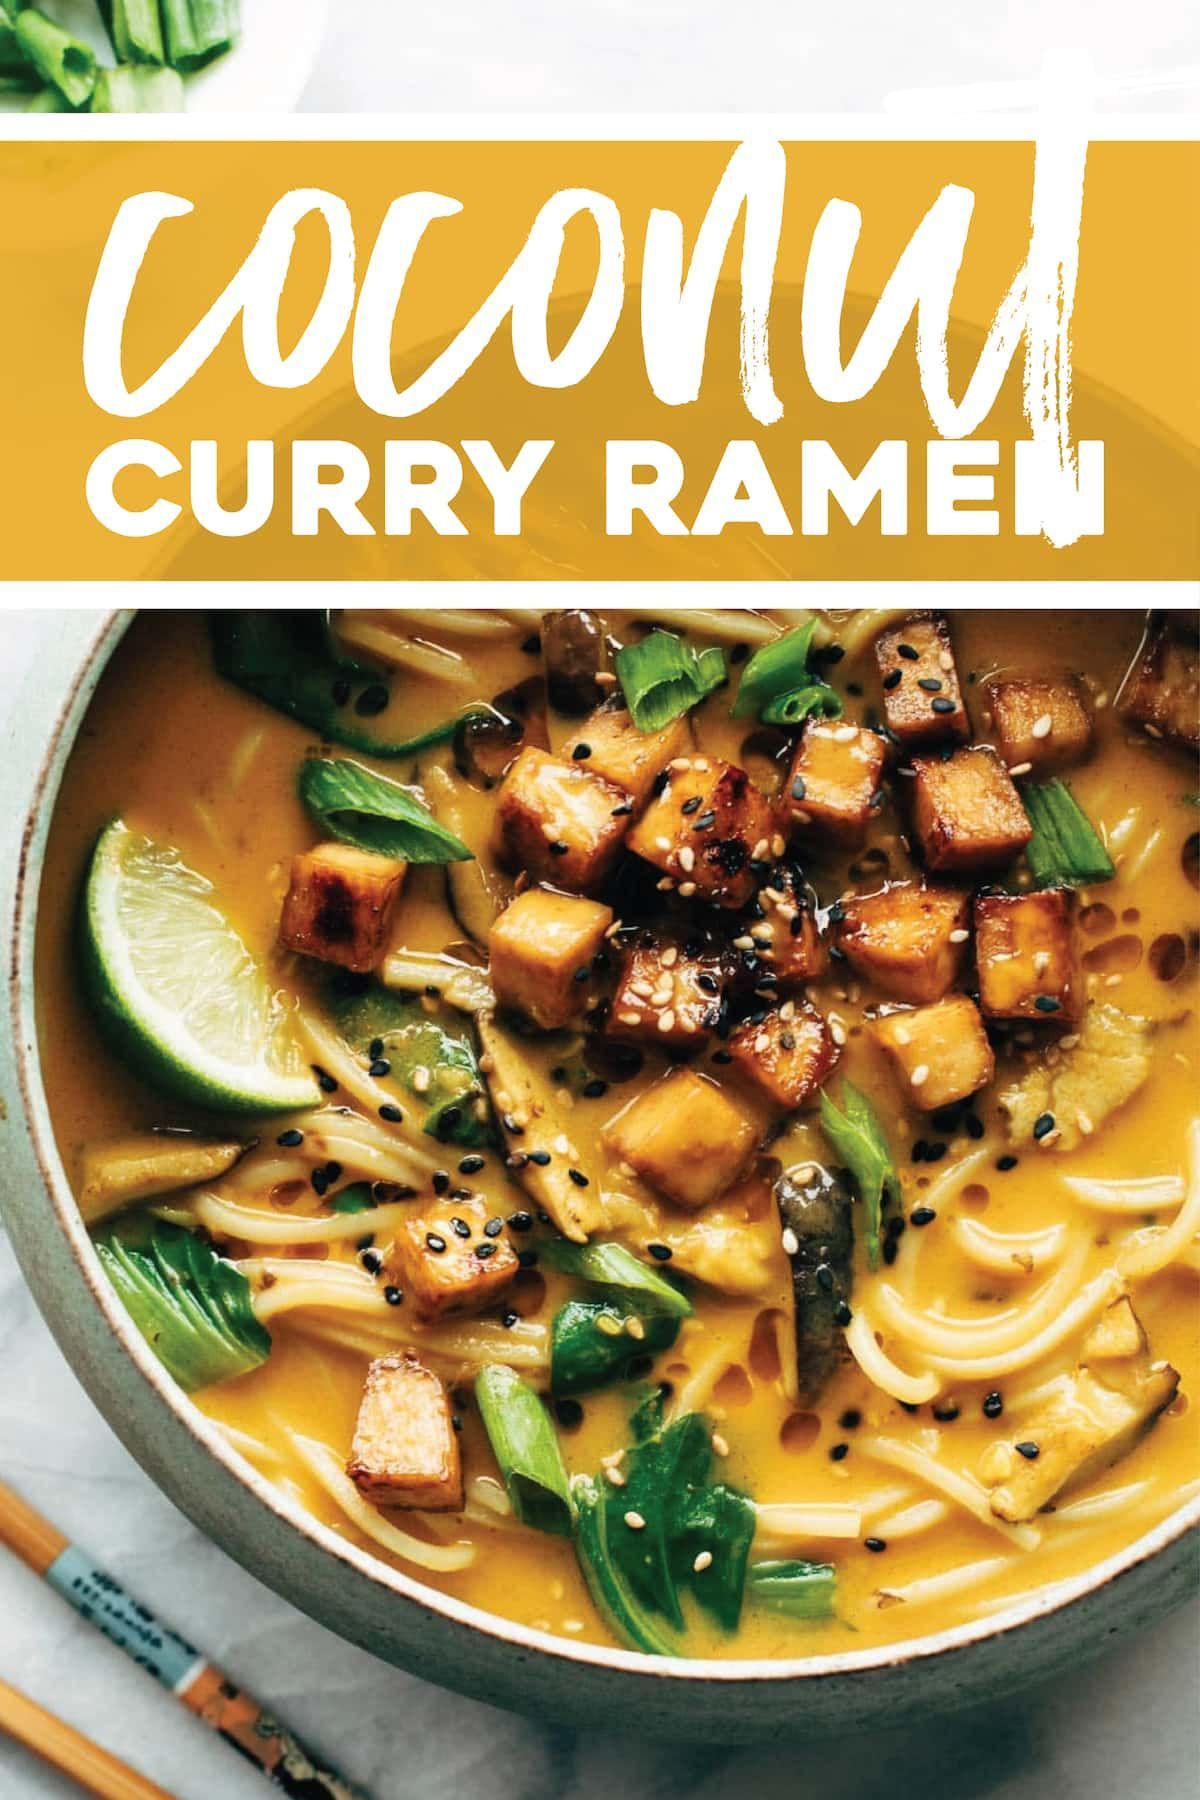 Curry Ramen Coconut Curry Ramen with a creamy golden broth, pan-fried vegetables, cubes of golden brown tofu, and steamy delicious ramen noodles. Bonus: it's vegan! | Coconut Curry Ramen with a creamy golden broth, pan-fried vegetables, cubes of golden brown tofu, and steamy delicious ramen noodles. Bonus: it's vegan! |